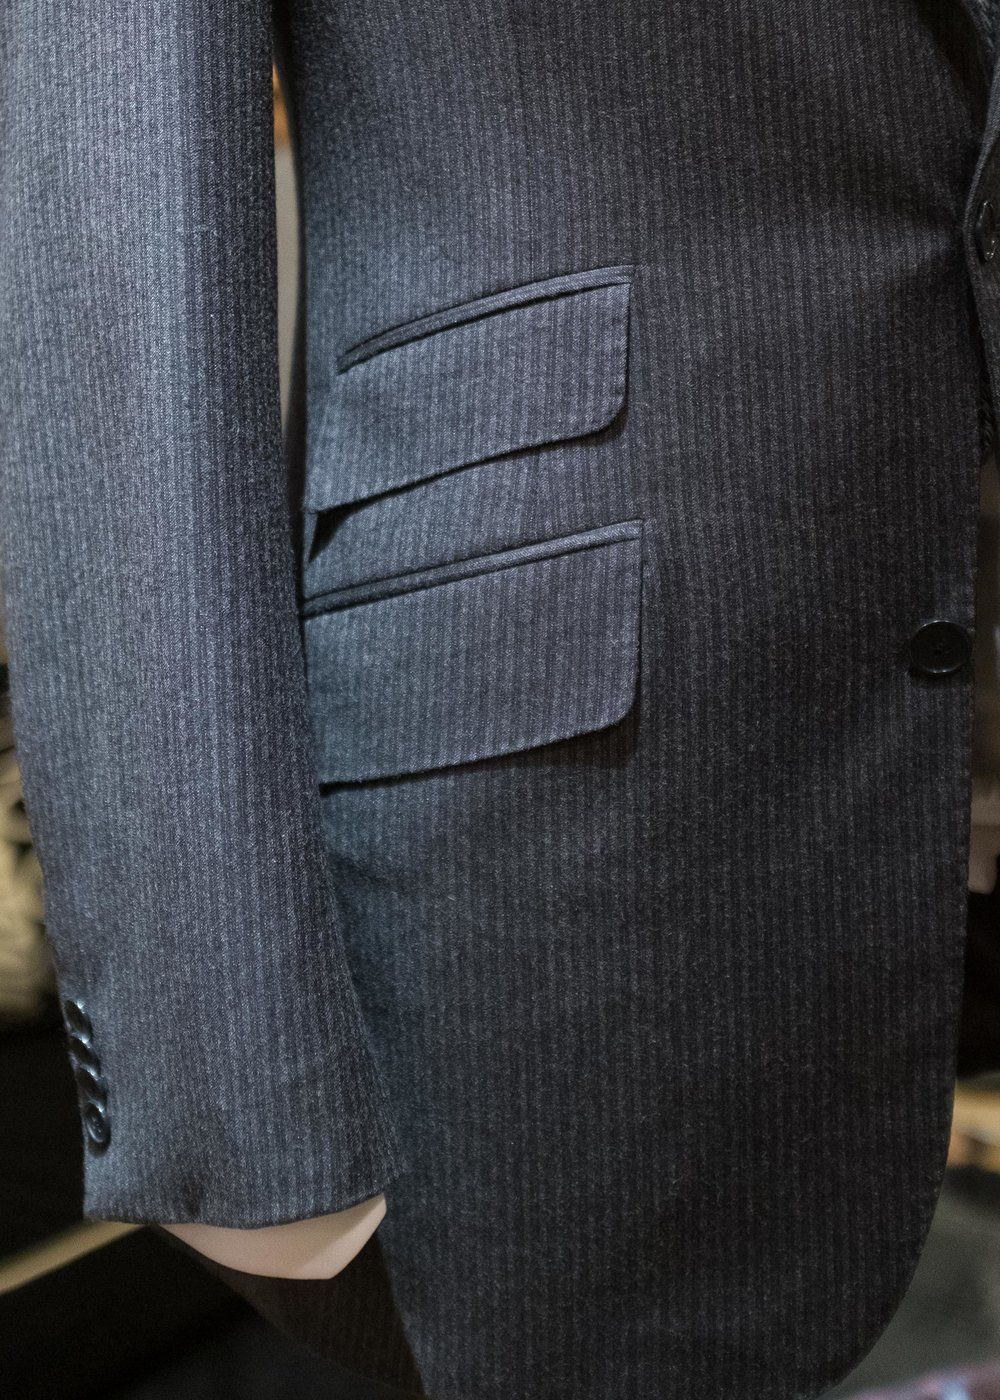 The curved front edge of this single-breasted suit jacket is reflected in the rounded front corner of the pocket flaps.